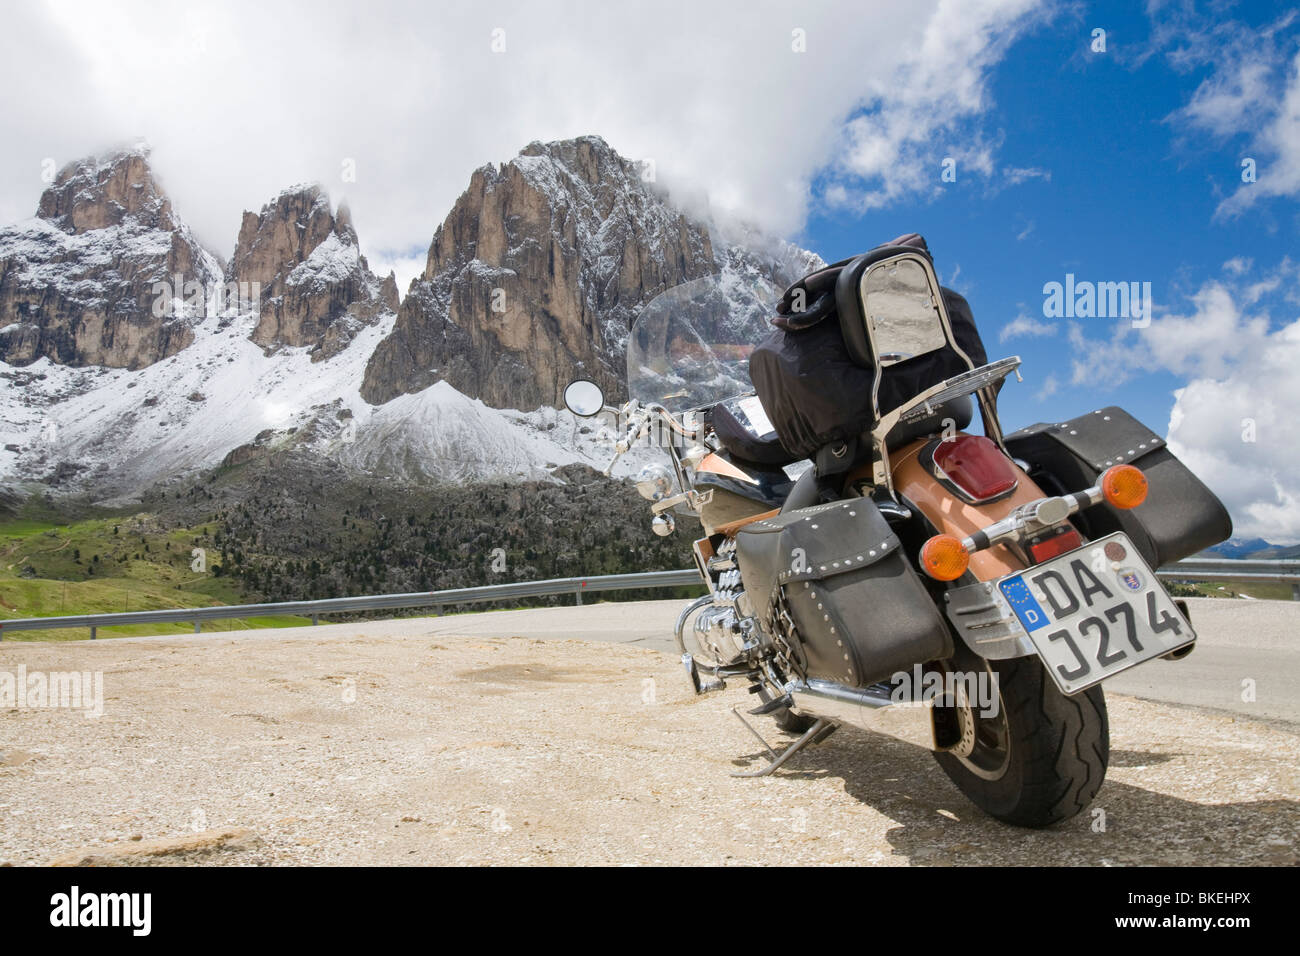 A Motorbike on the summit of the Sella Joch pass in the Italian Dolomites with mountain view behind - Stock Image